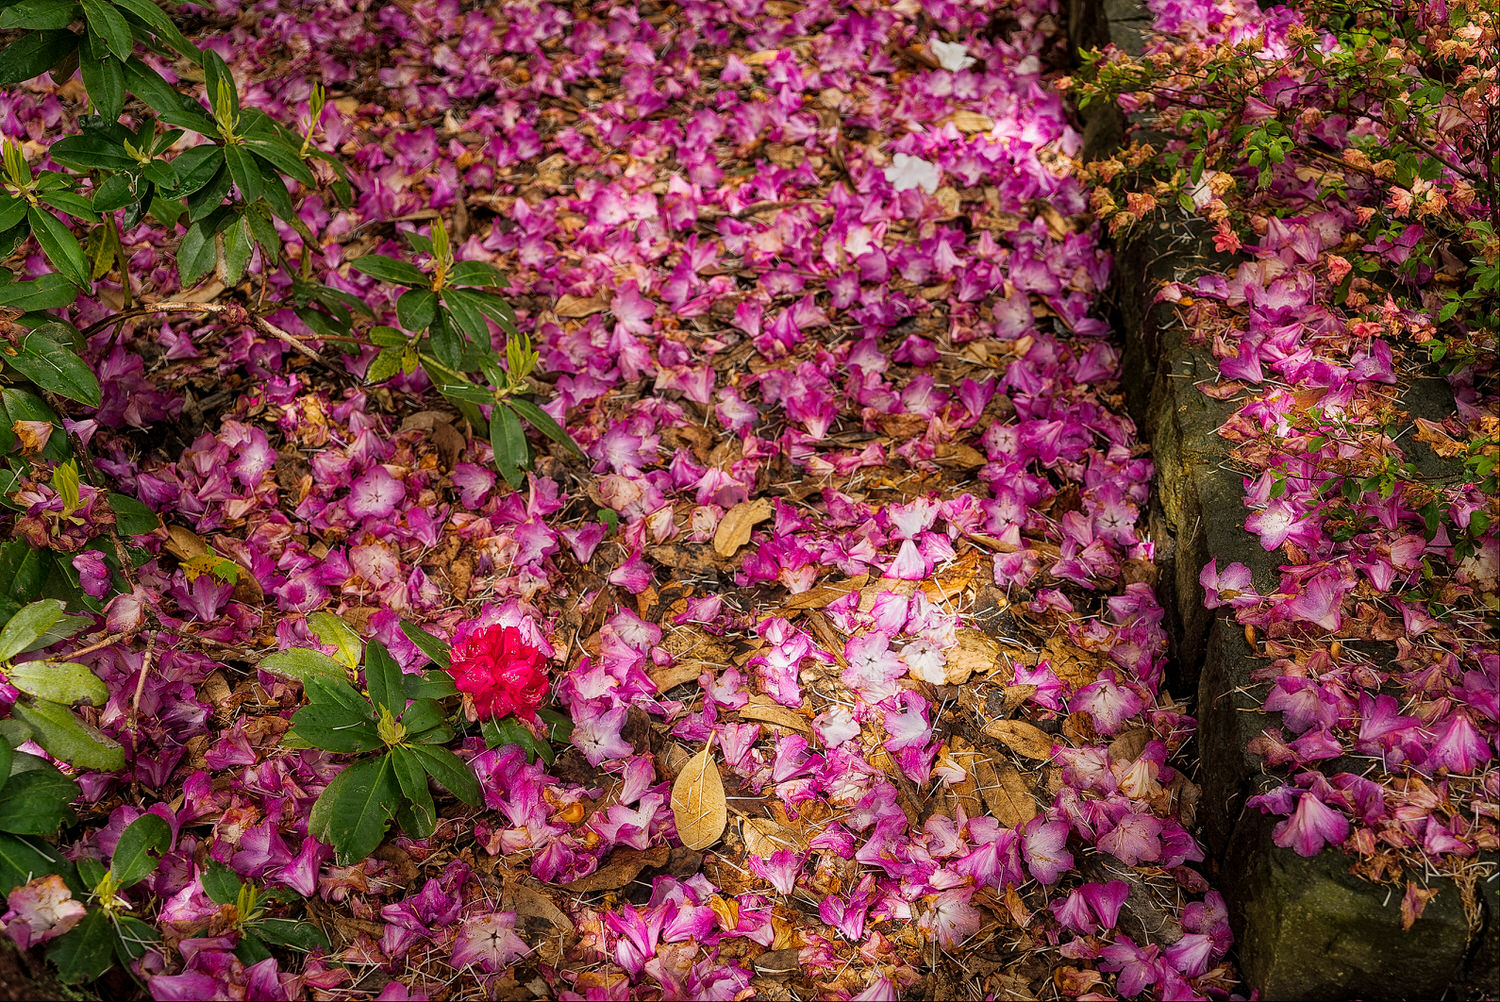 Fallen flower petals    carpet the ground in color in the    Christchurch Botanical Gardens    in Christchurch, New Zealand.